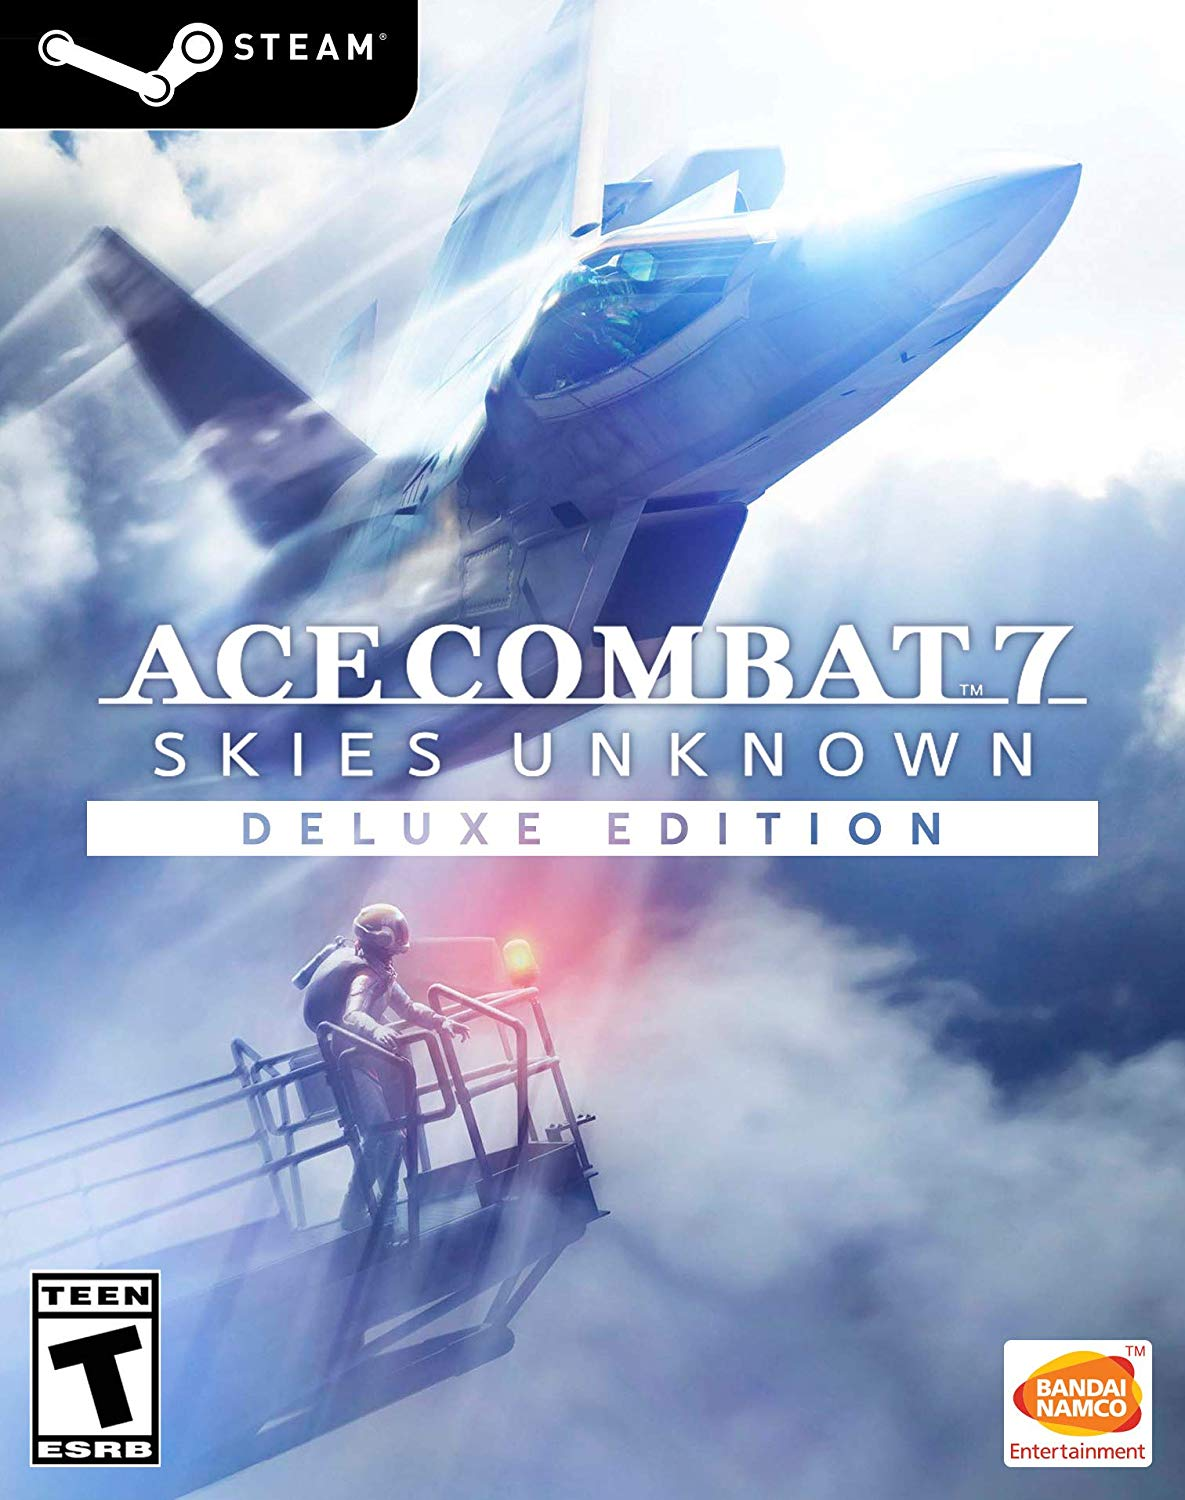 https://img5.downloadha.com/hosein/files/2019/02/Ace-Combat-7-Skies-Unknown-pc-cover-large_source.jpg